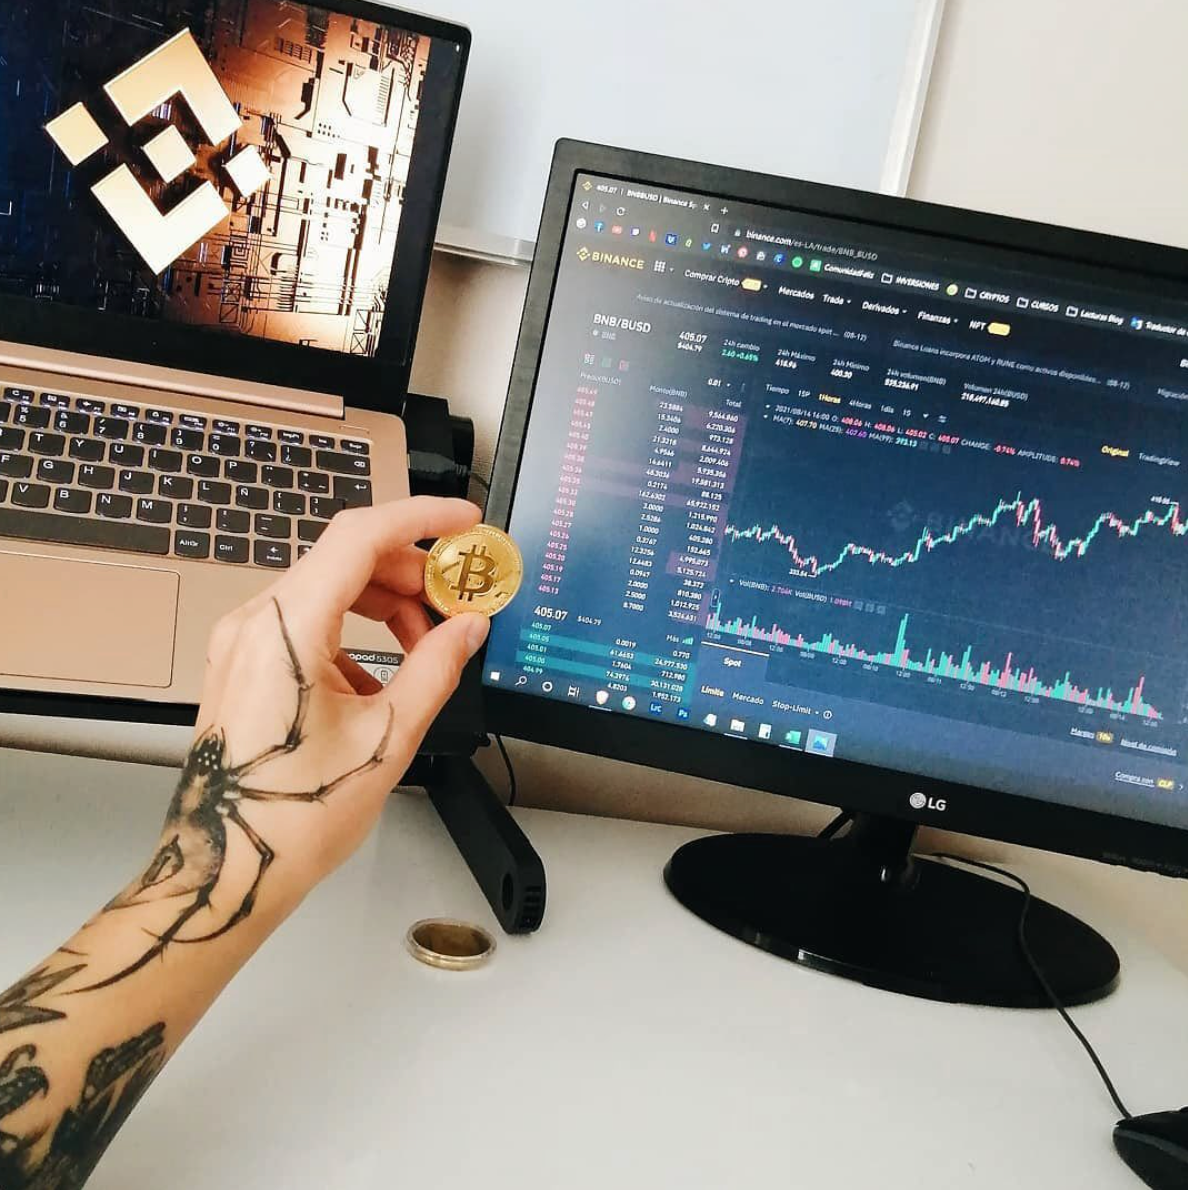 Someone holding a gold Bitcoin in front of a monitor displaying the Binance interface